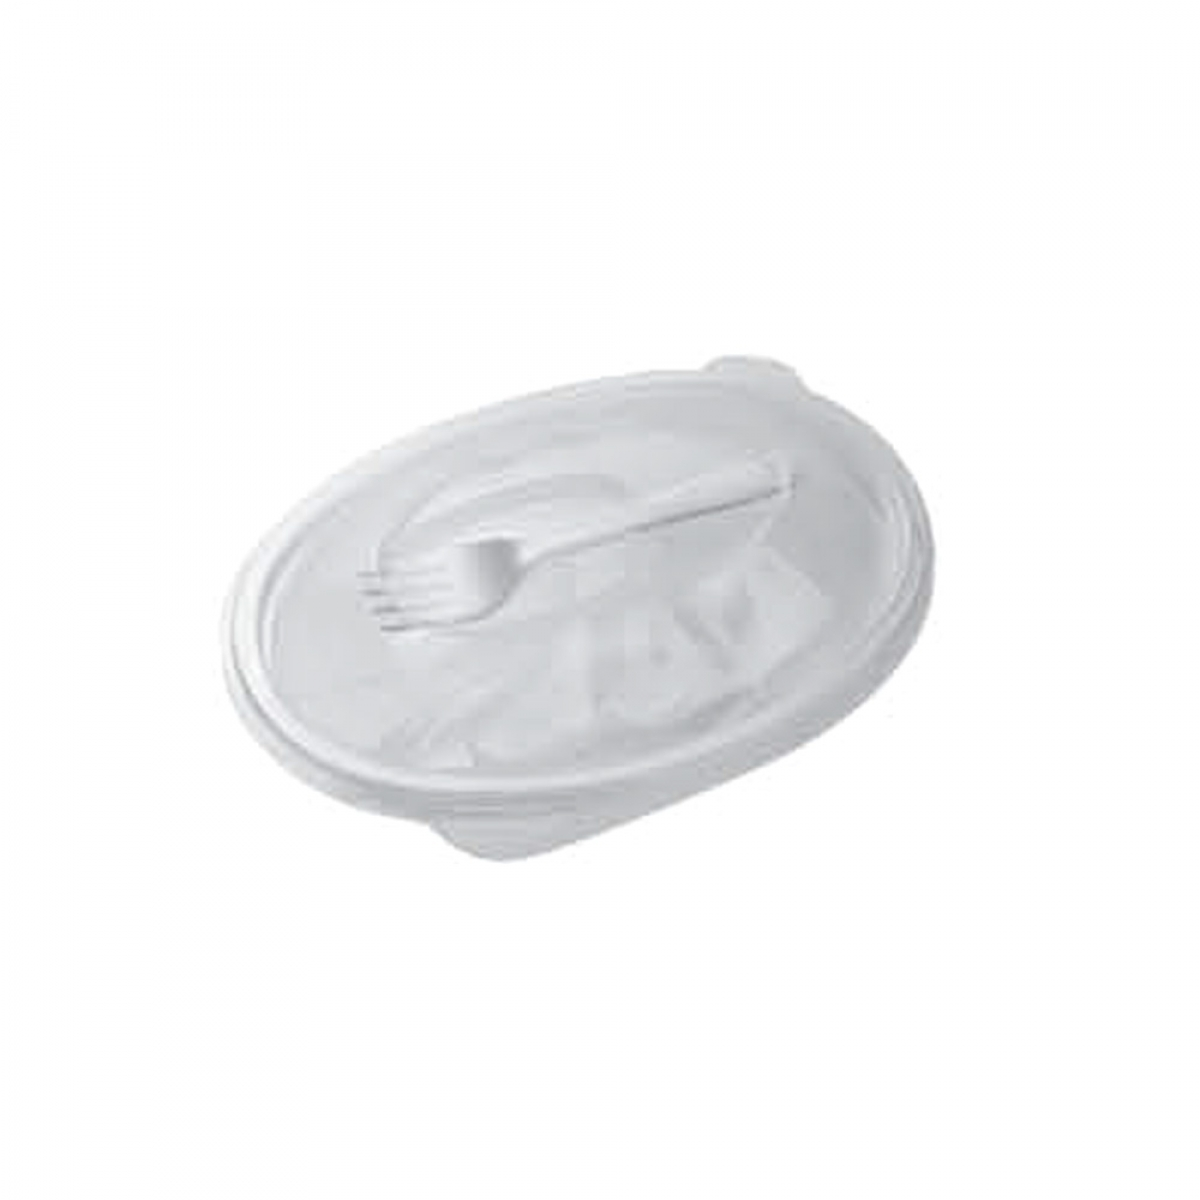 oval hinged container with spork 190*140*60